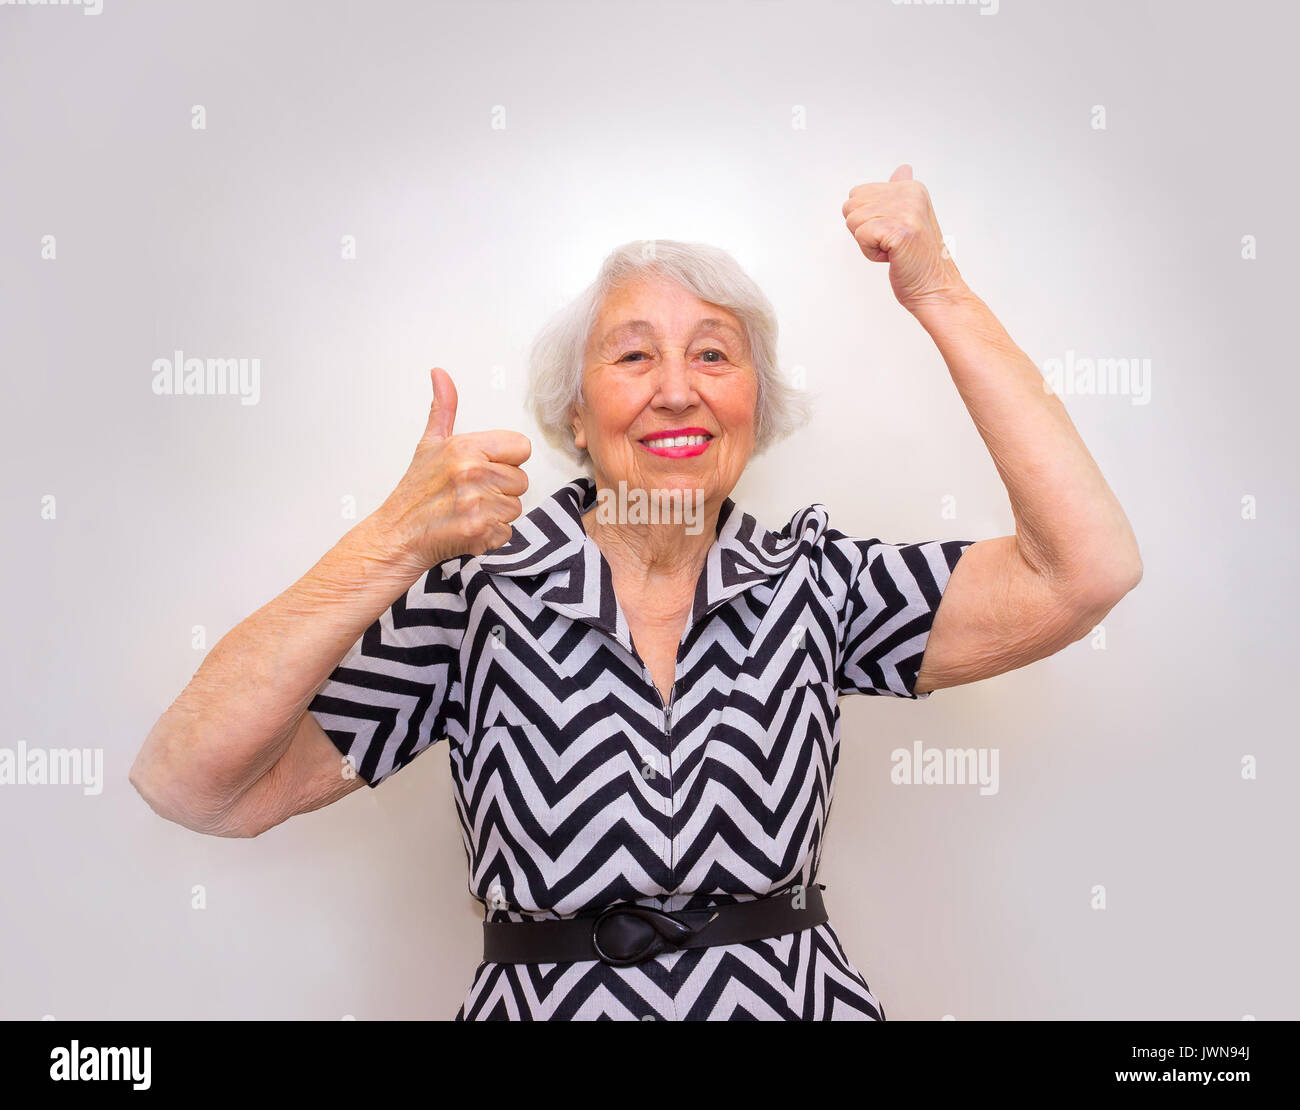 The portrait of a cheerful senior woman gesturing victory over pink - Stock Image